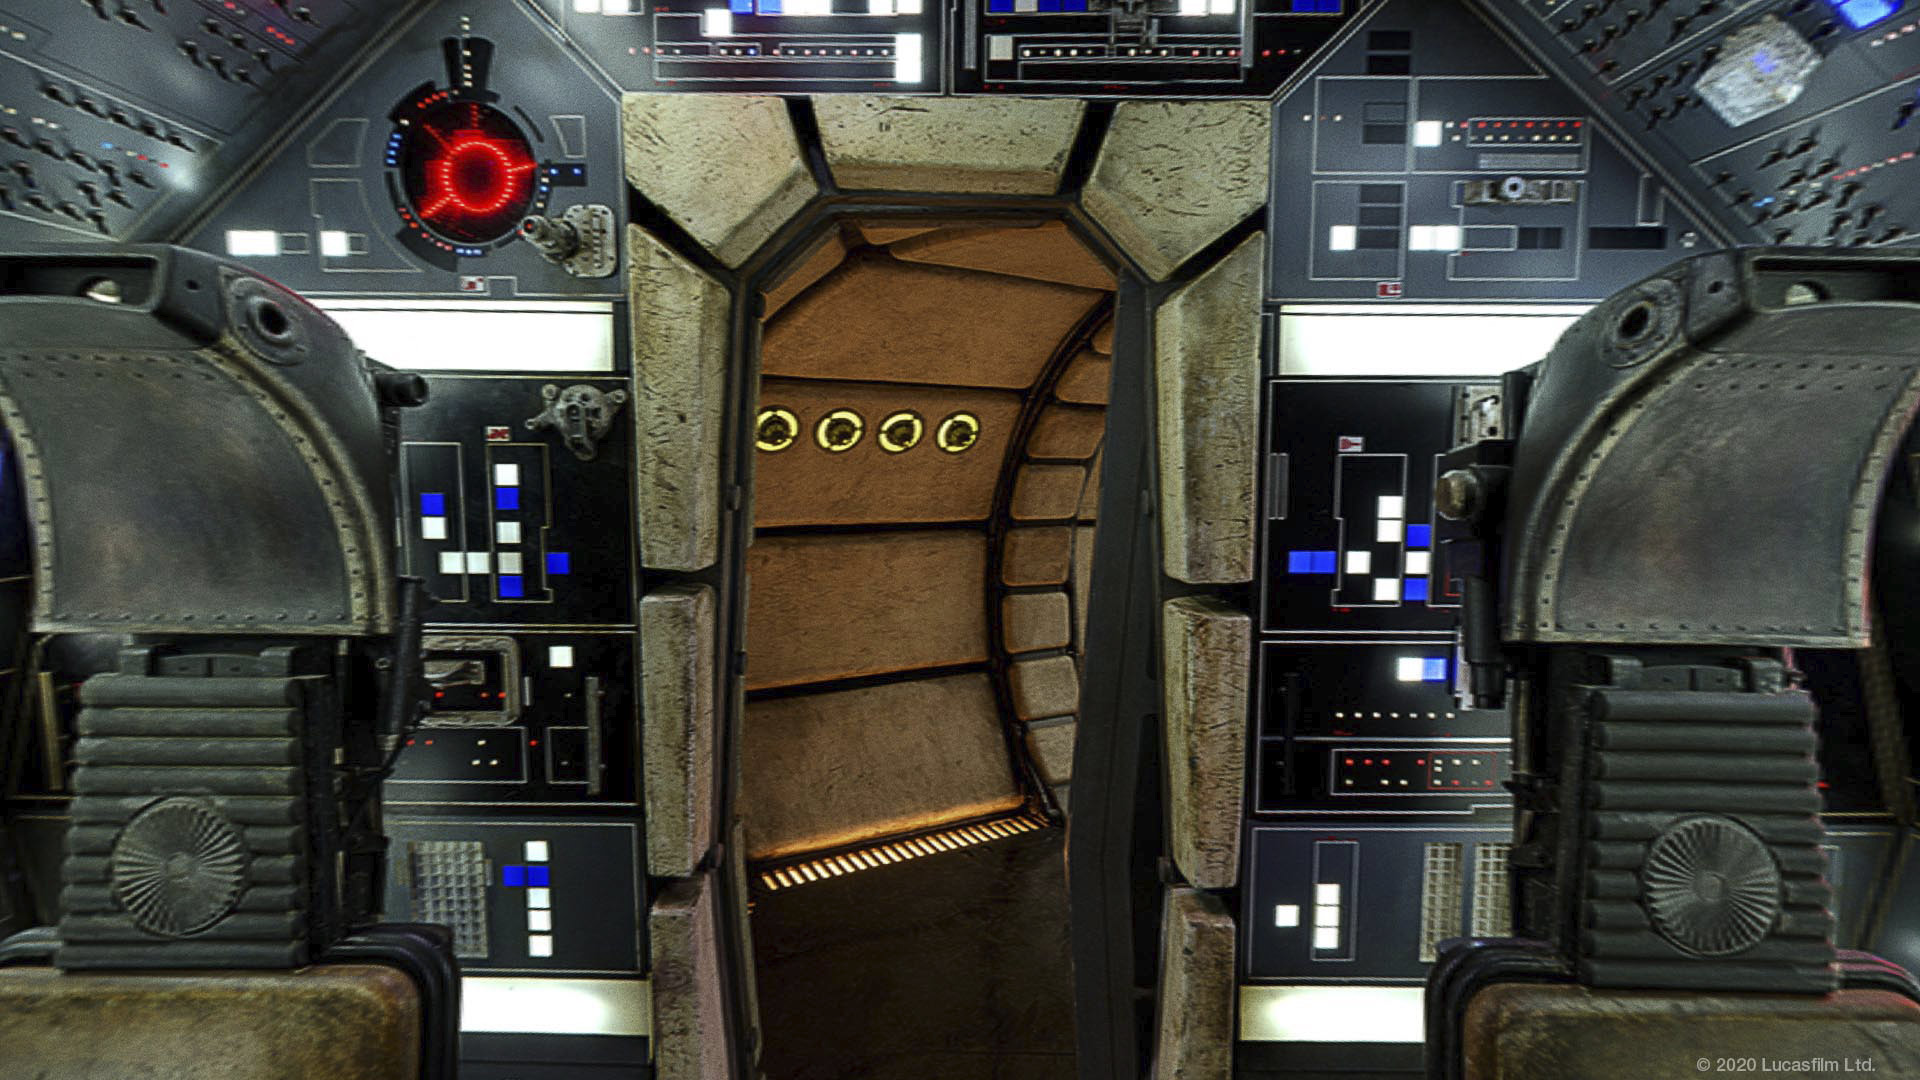 Star Wars virtual background: The Millennium Falcon